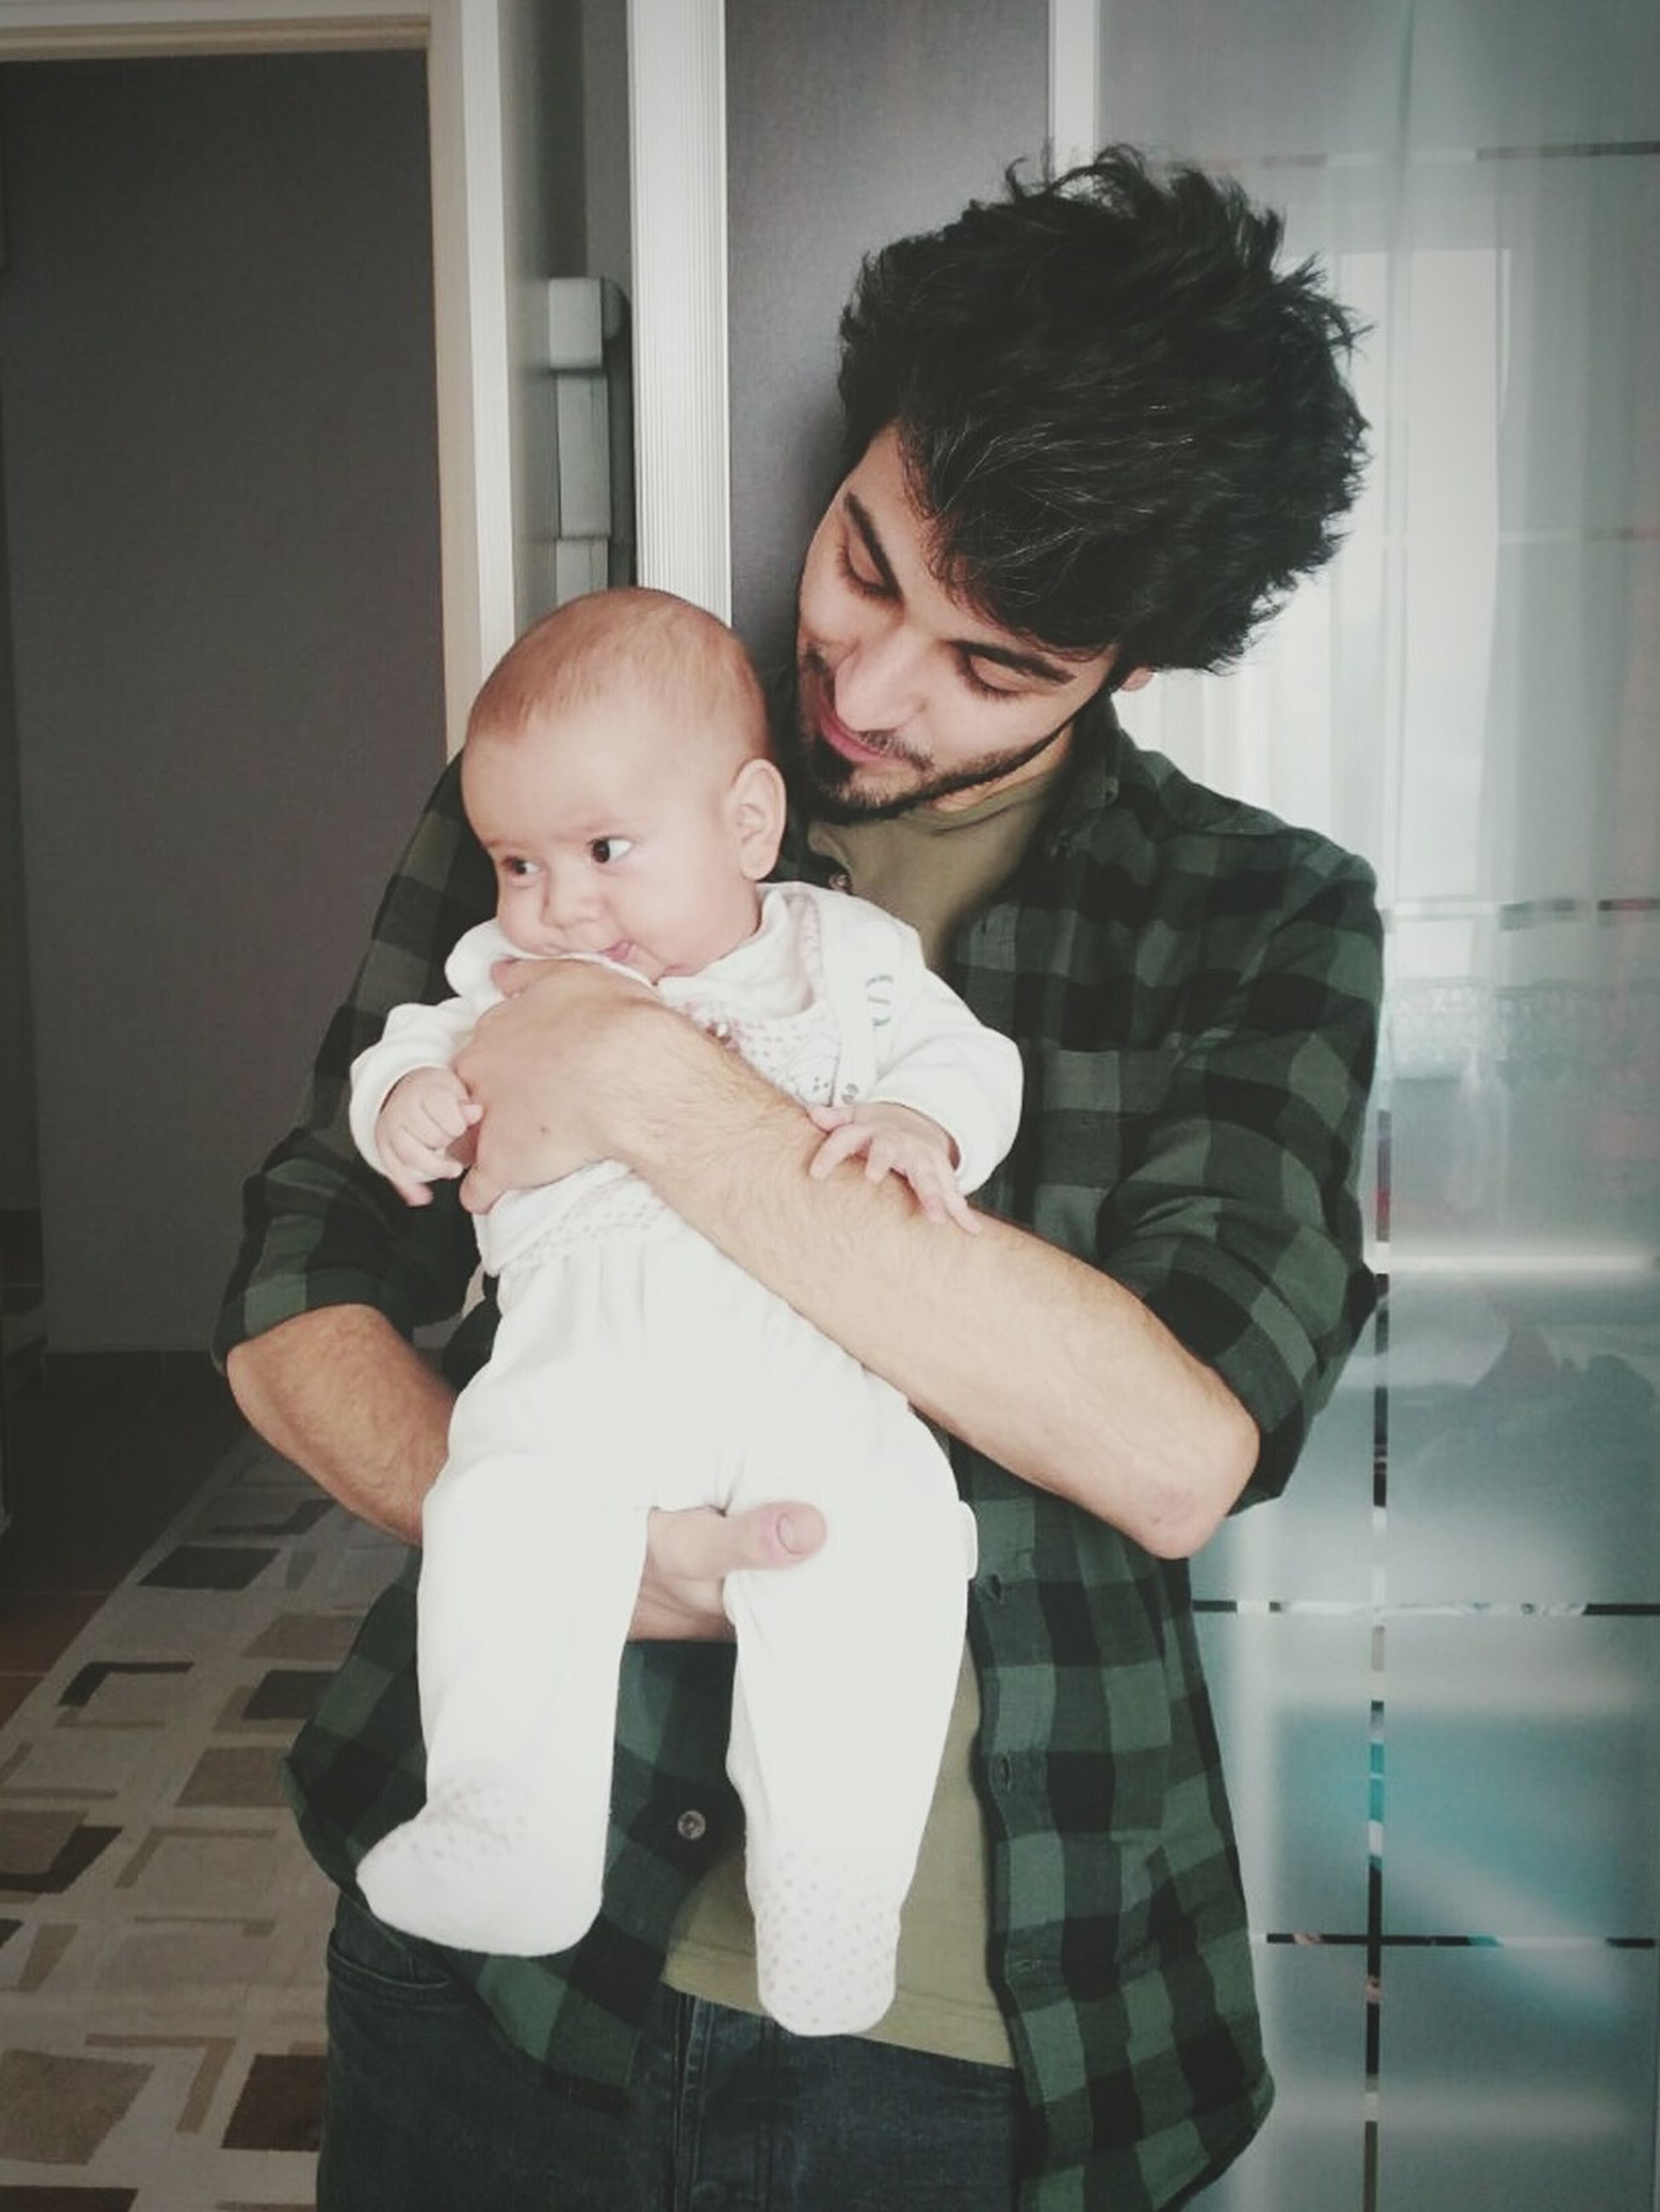 baby, real people, togetherness, love, family with one child, lifestyles, family, holding, bonding, babyhood, young adult, indoors, childhood, young men, casual clothing, home interior, front view, father, son, leisure activity, new life, care, happiness, young women, day, men, people